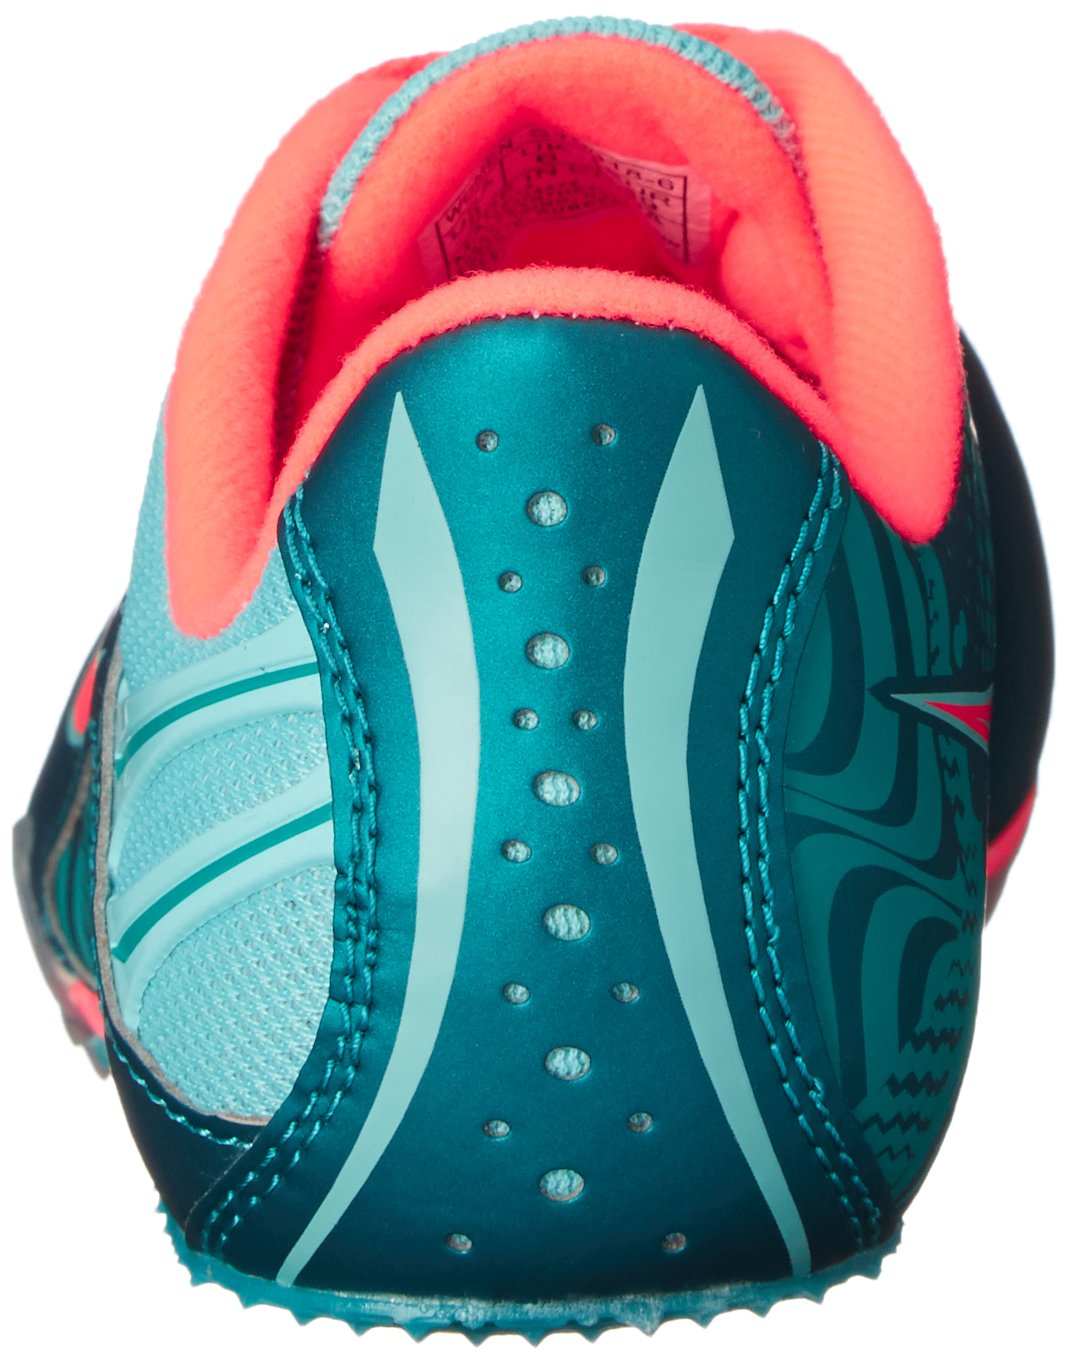 Saucony Women's Spitfire Spike Shoe, Teal/Coral, 7 M US by Saucony (Image #2)